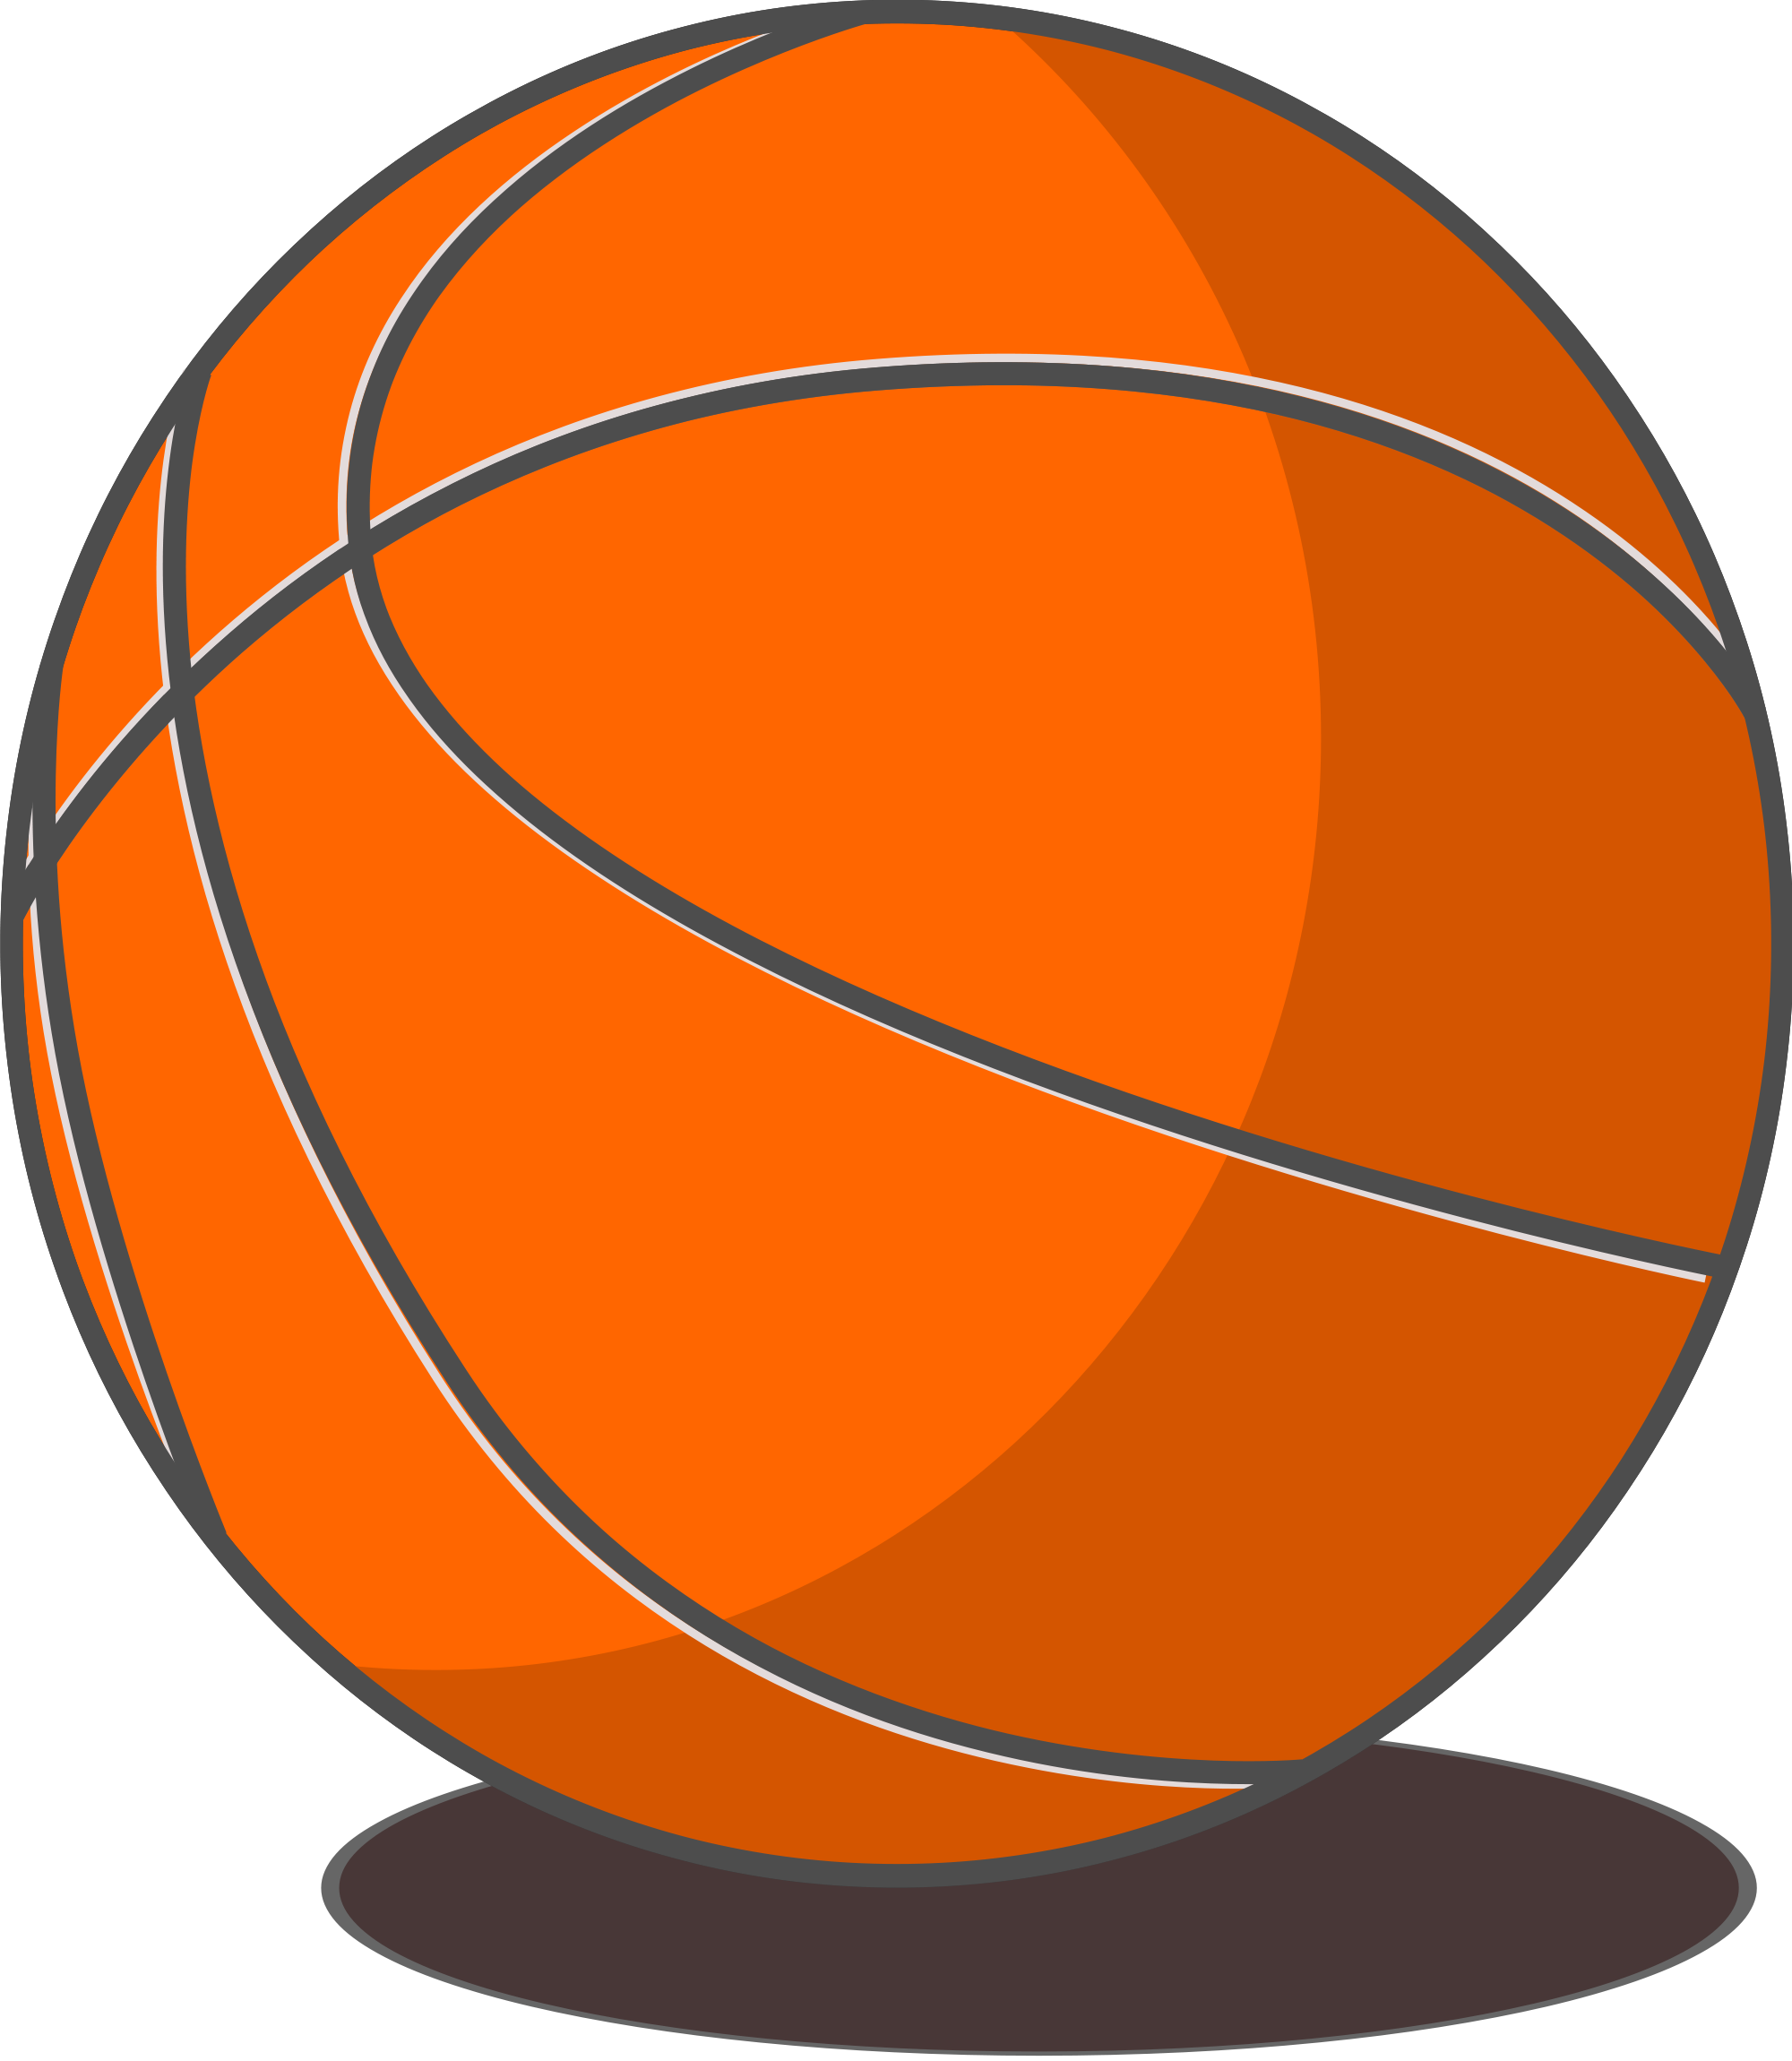 Clipart borders basketball. File svg wikimedia commons